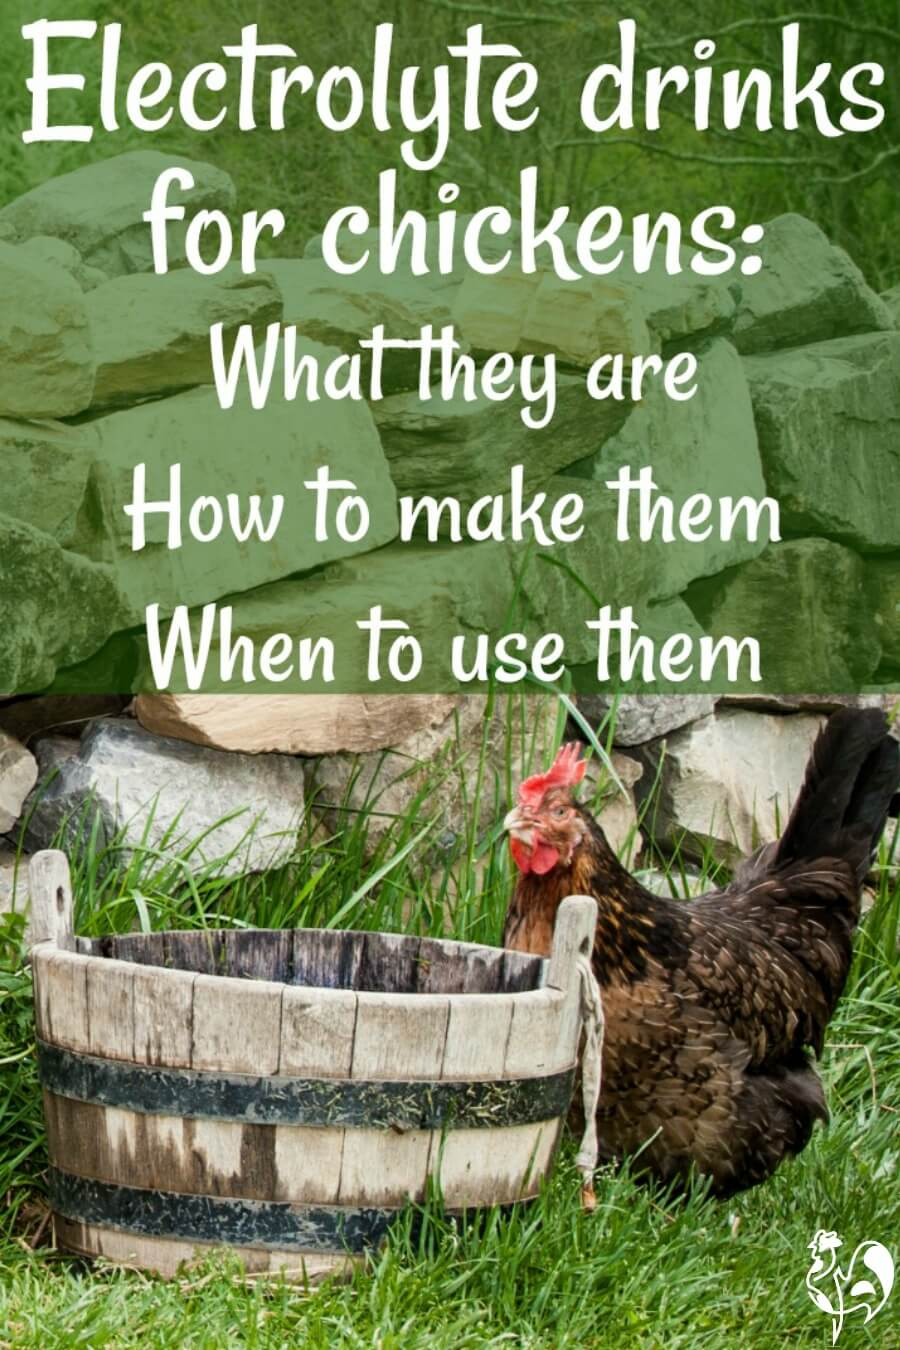 Link to electrolyte drinks for chickens.